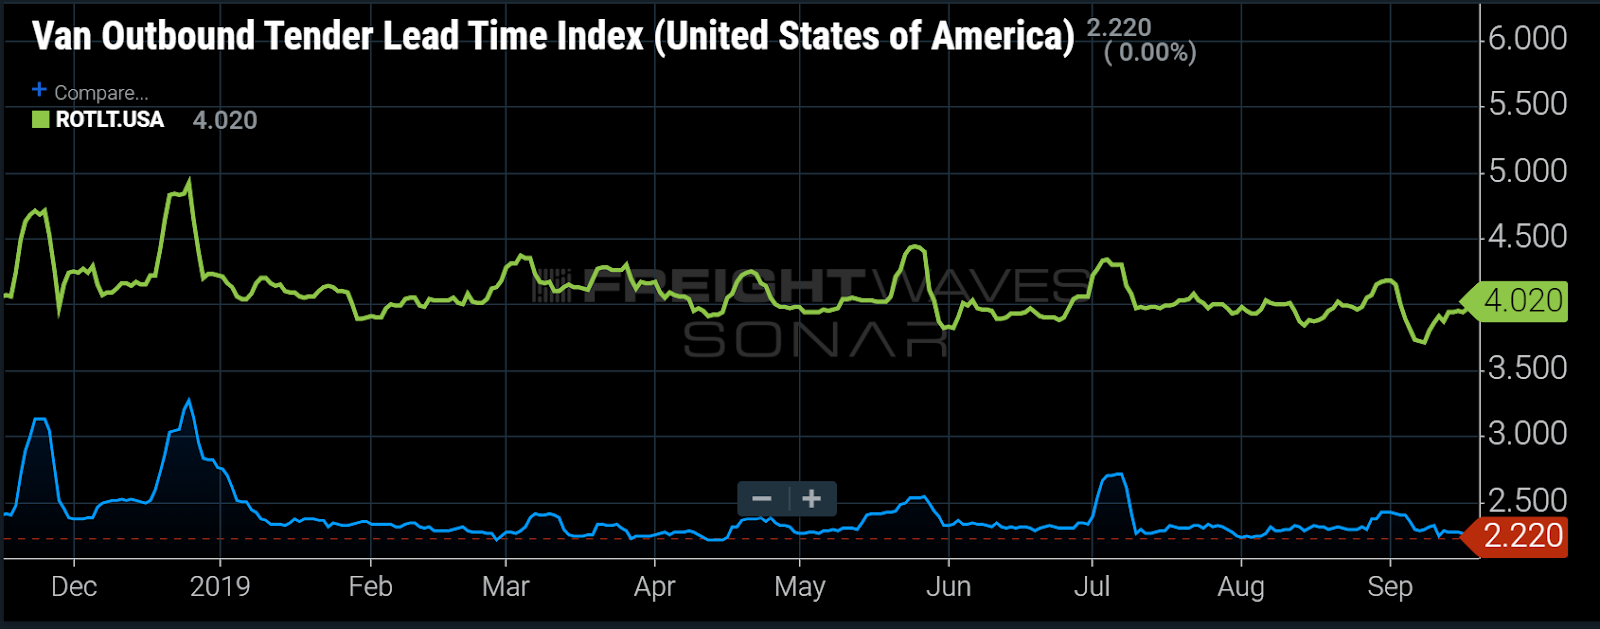 Van Outbound Tender Lead Time Index (United States of America)